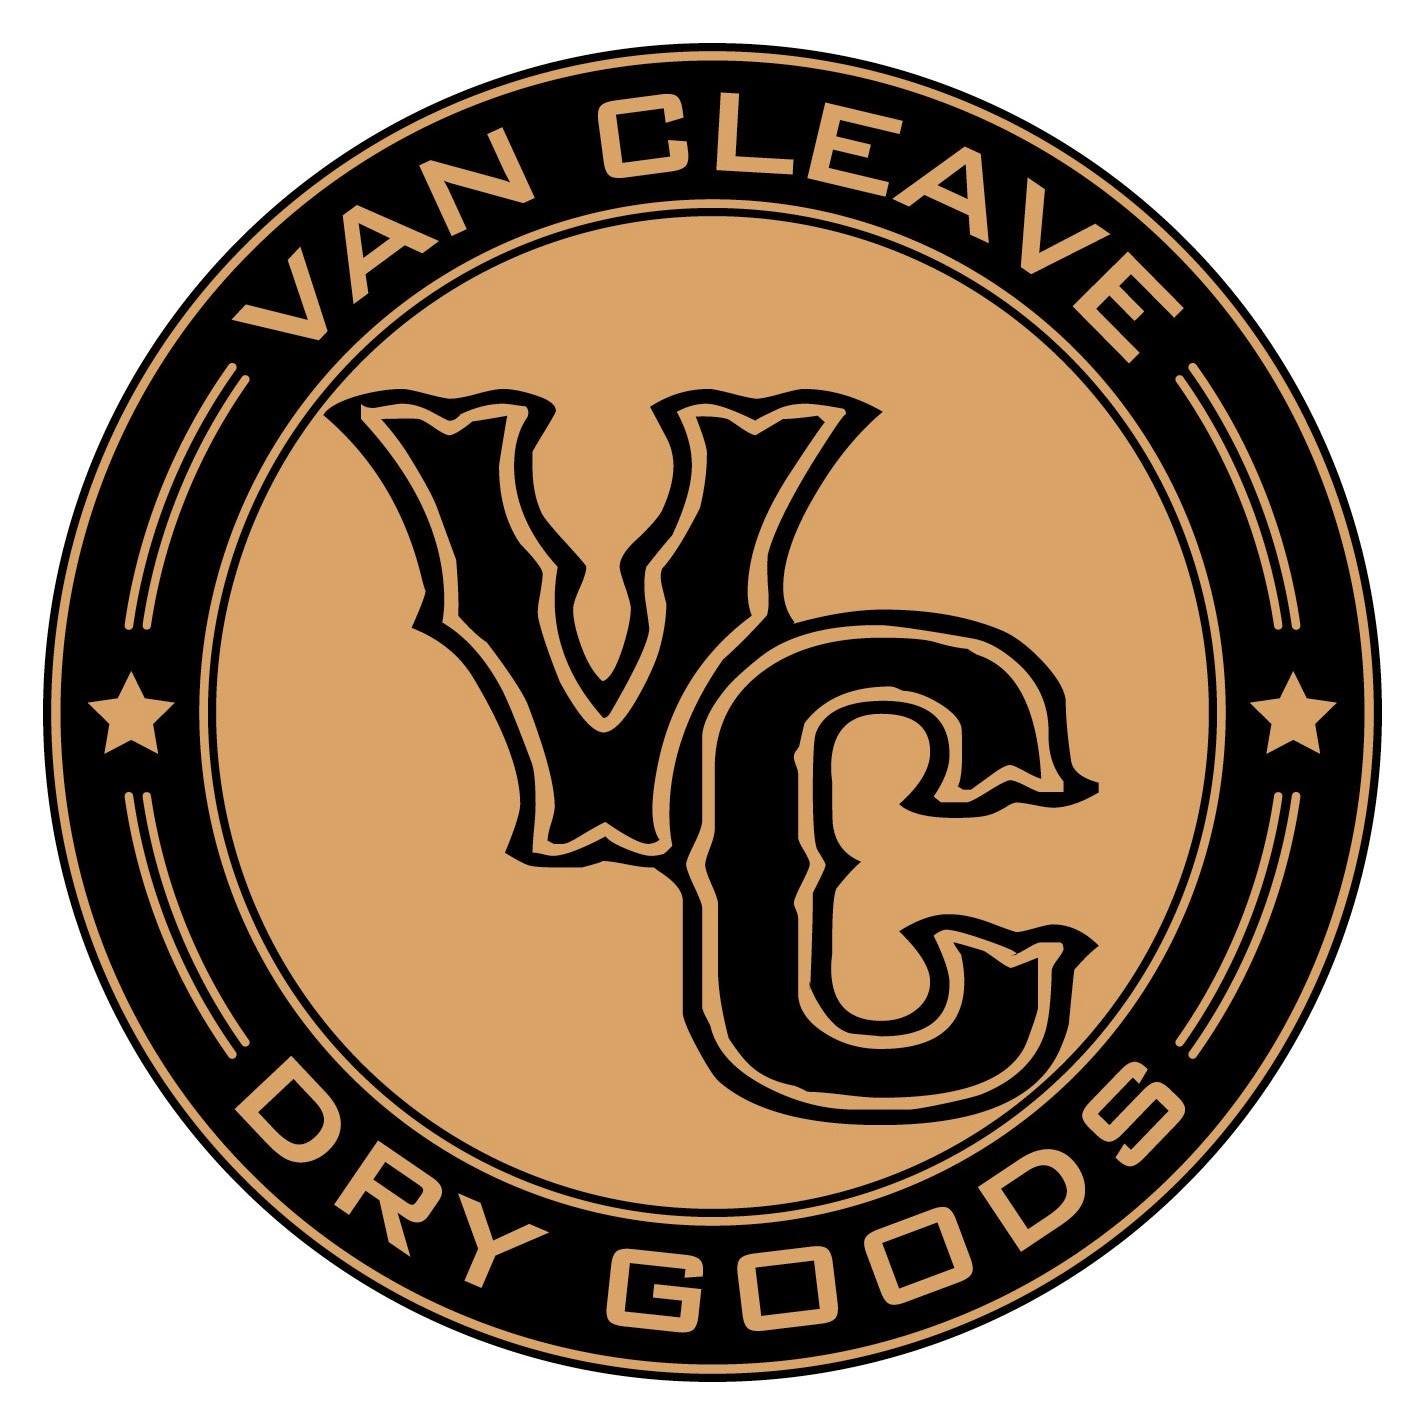 van cleave dry goods